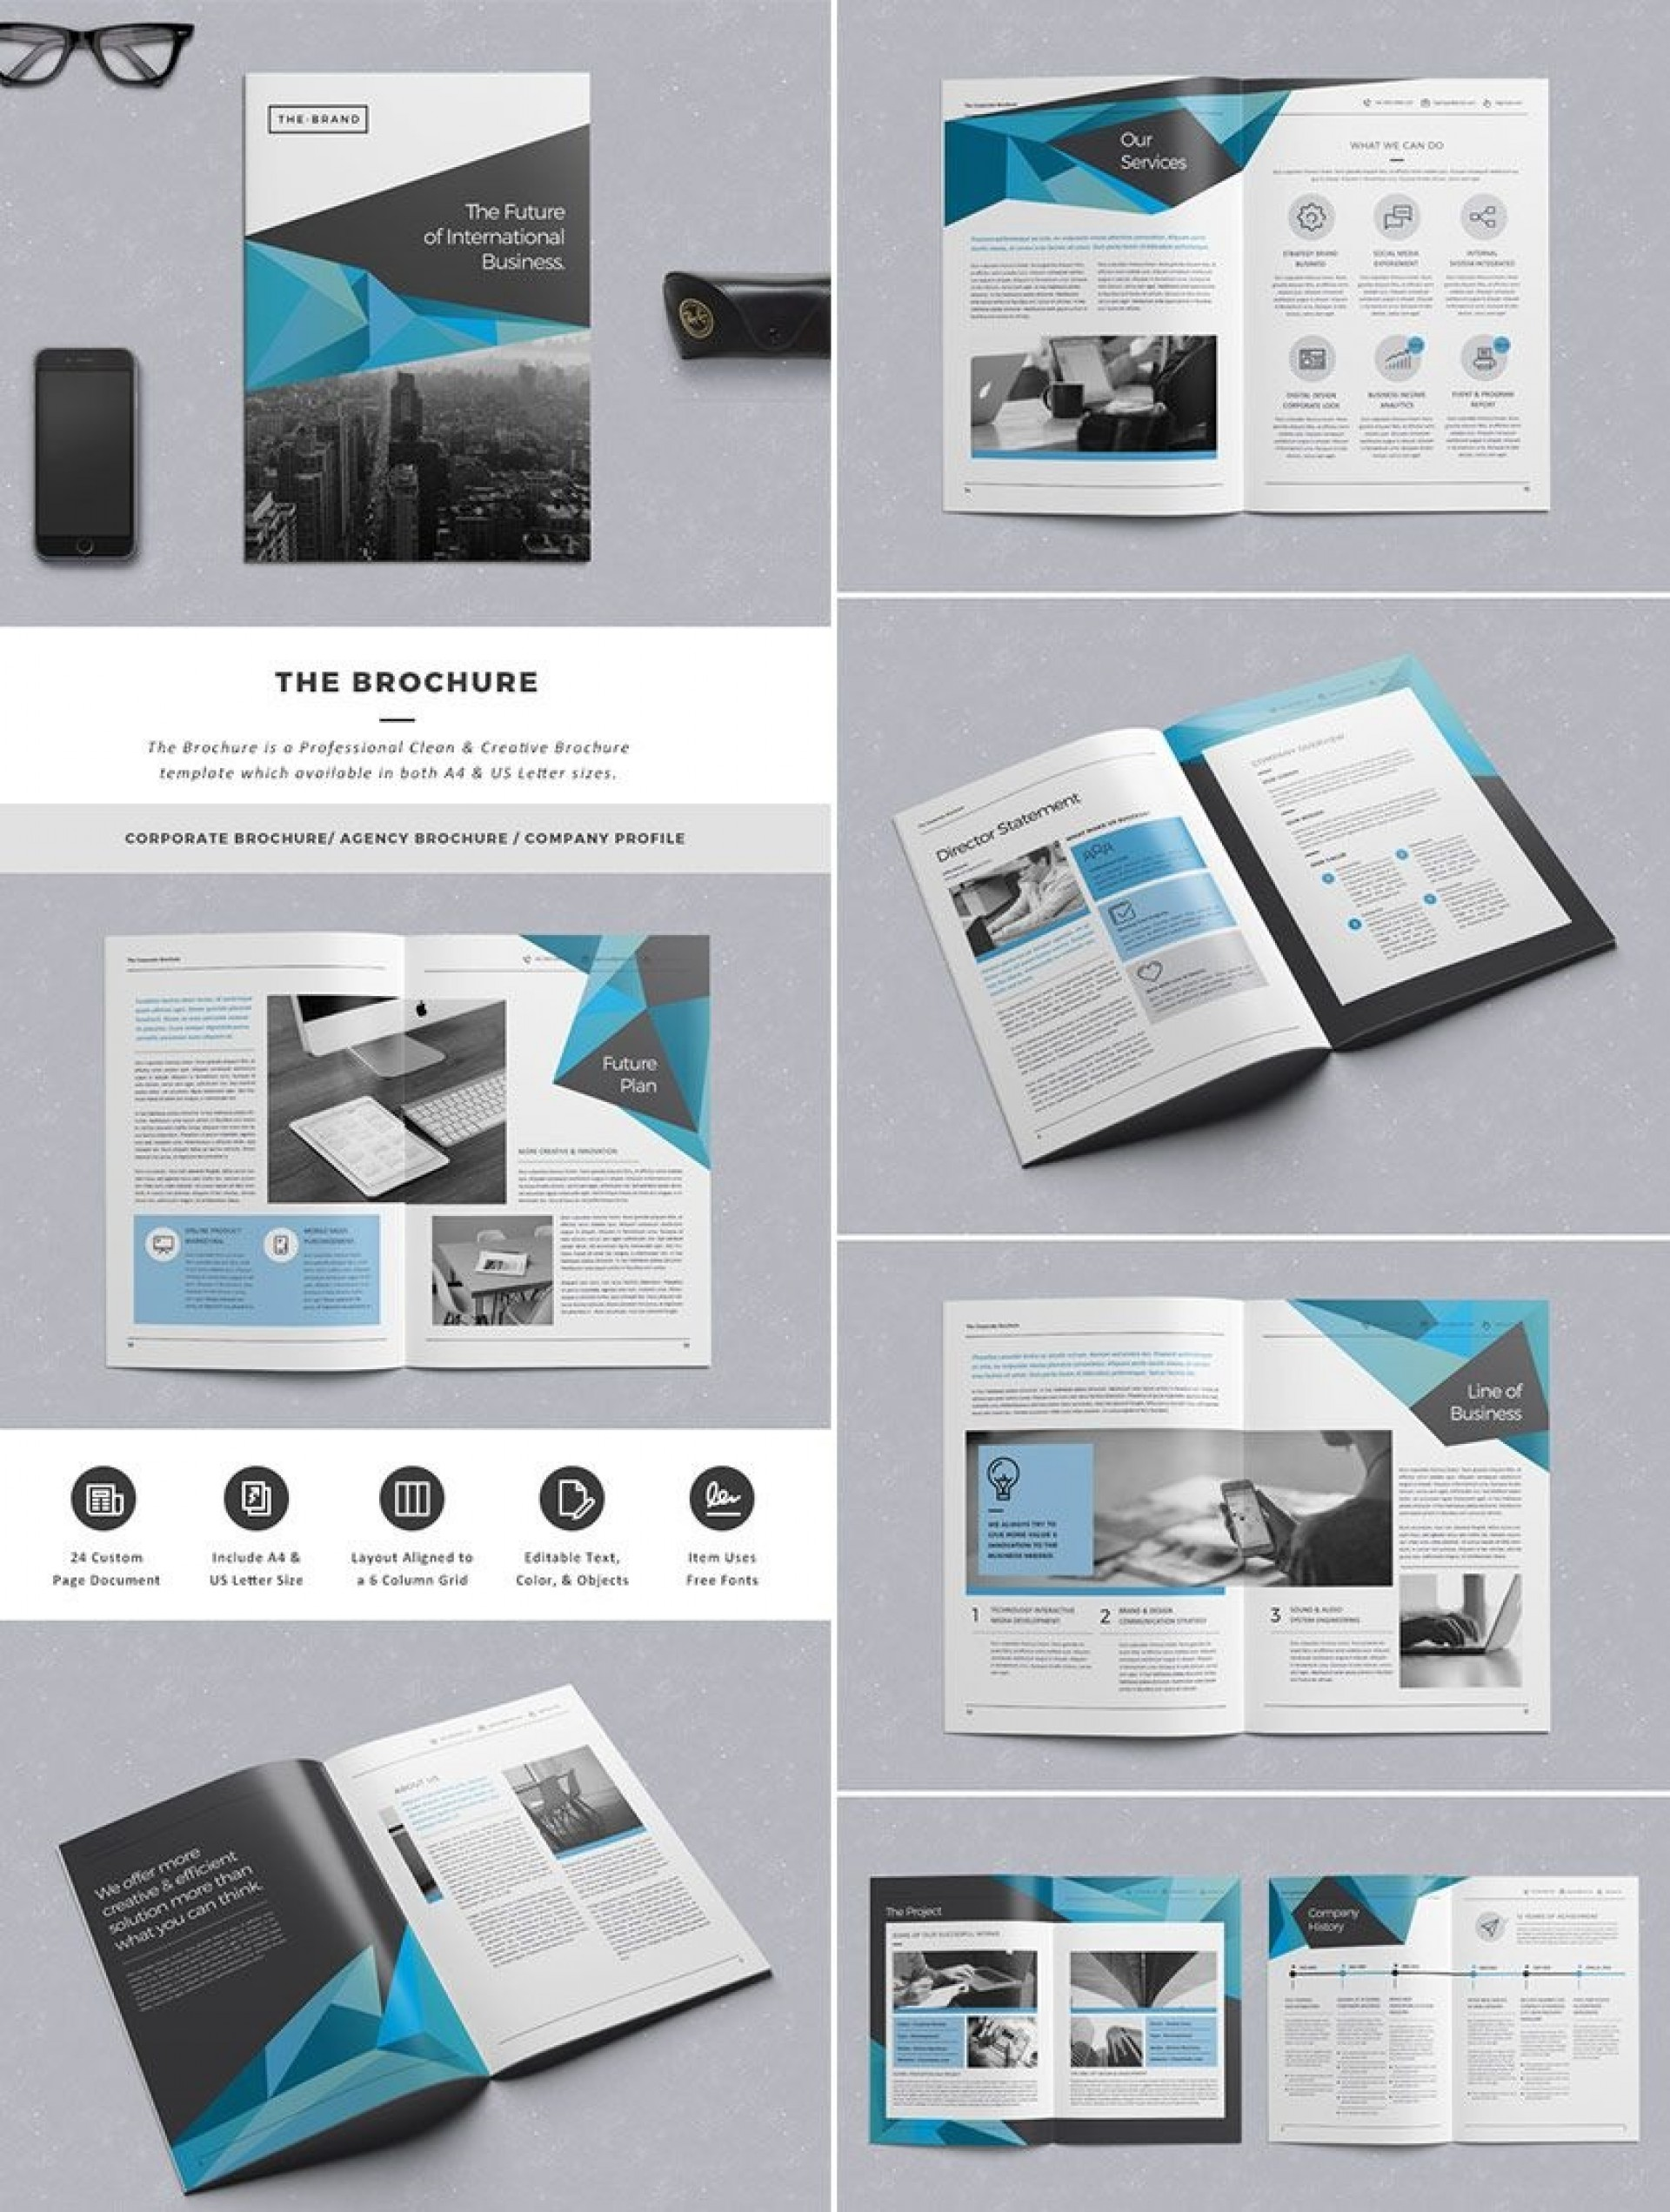 000 Formidable In Design Flyer Template Highest Quality  Indesign Free Adobe Download1920